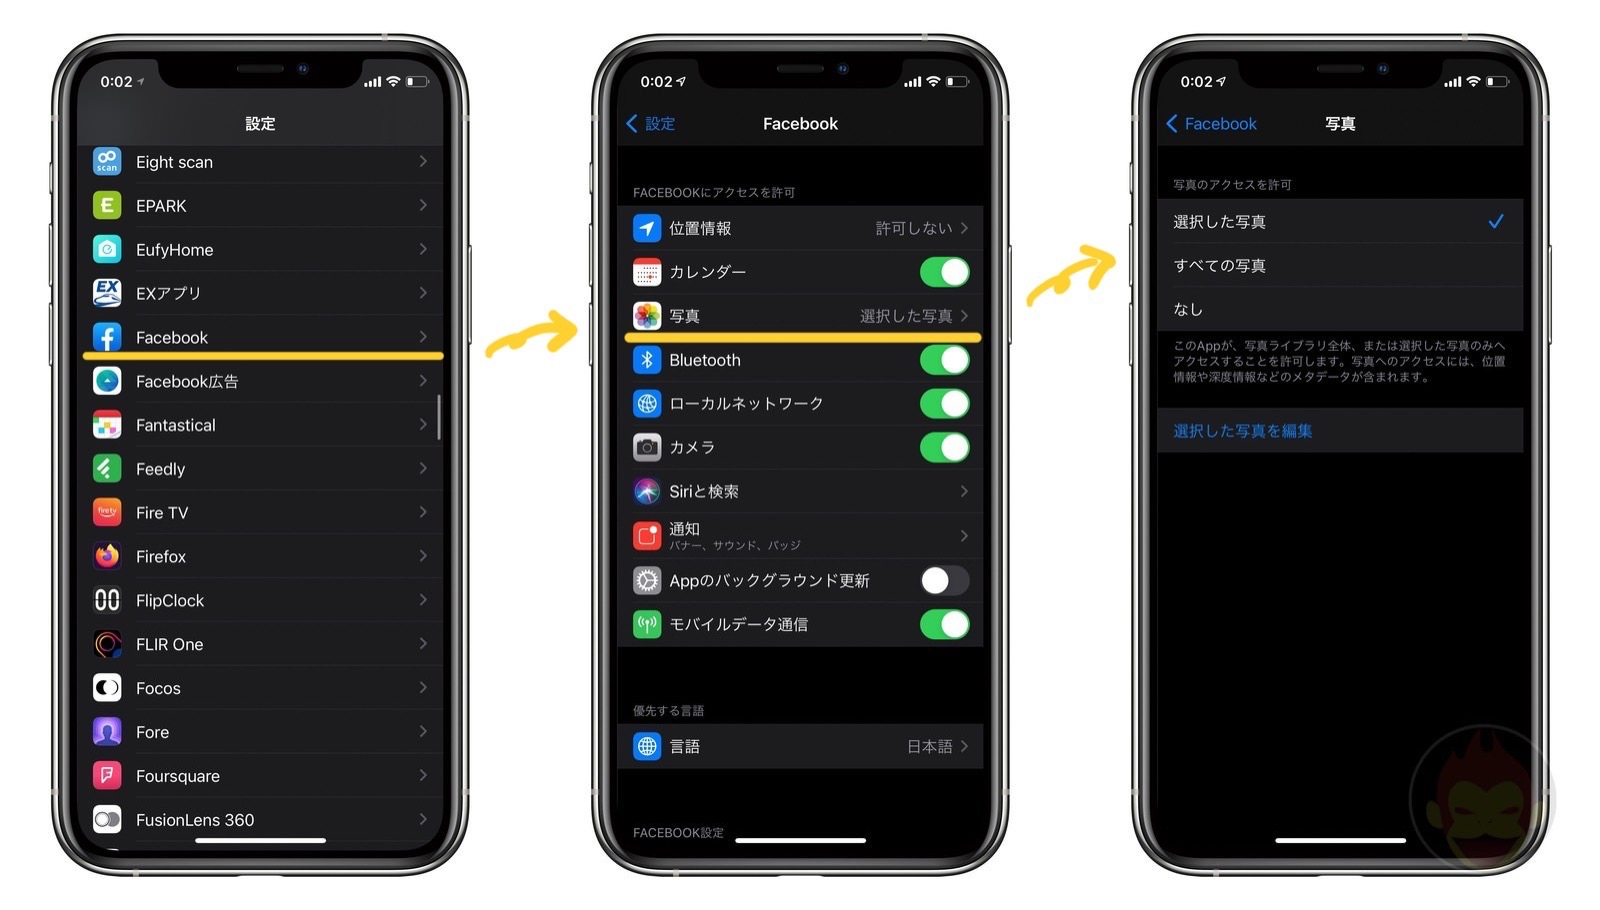 IOS14 photo access privacy settings 03